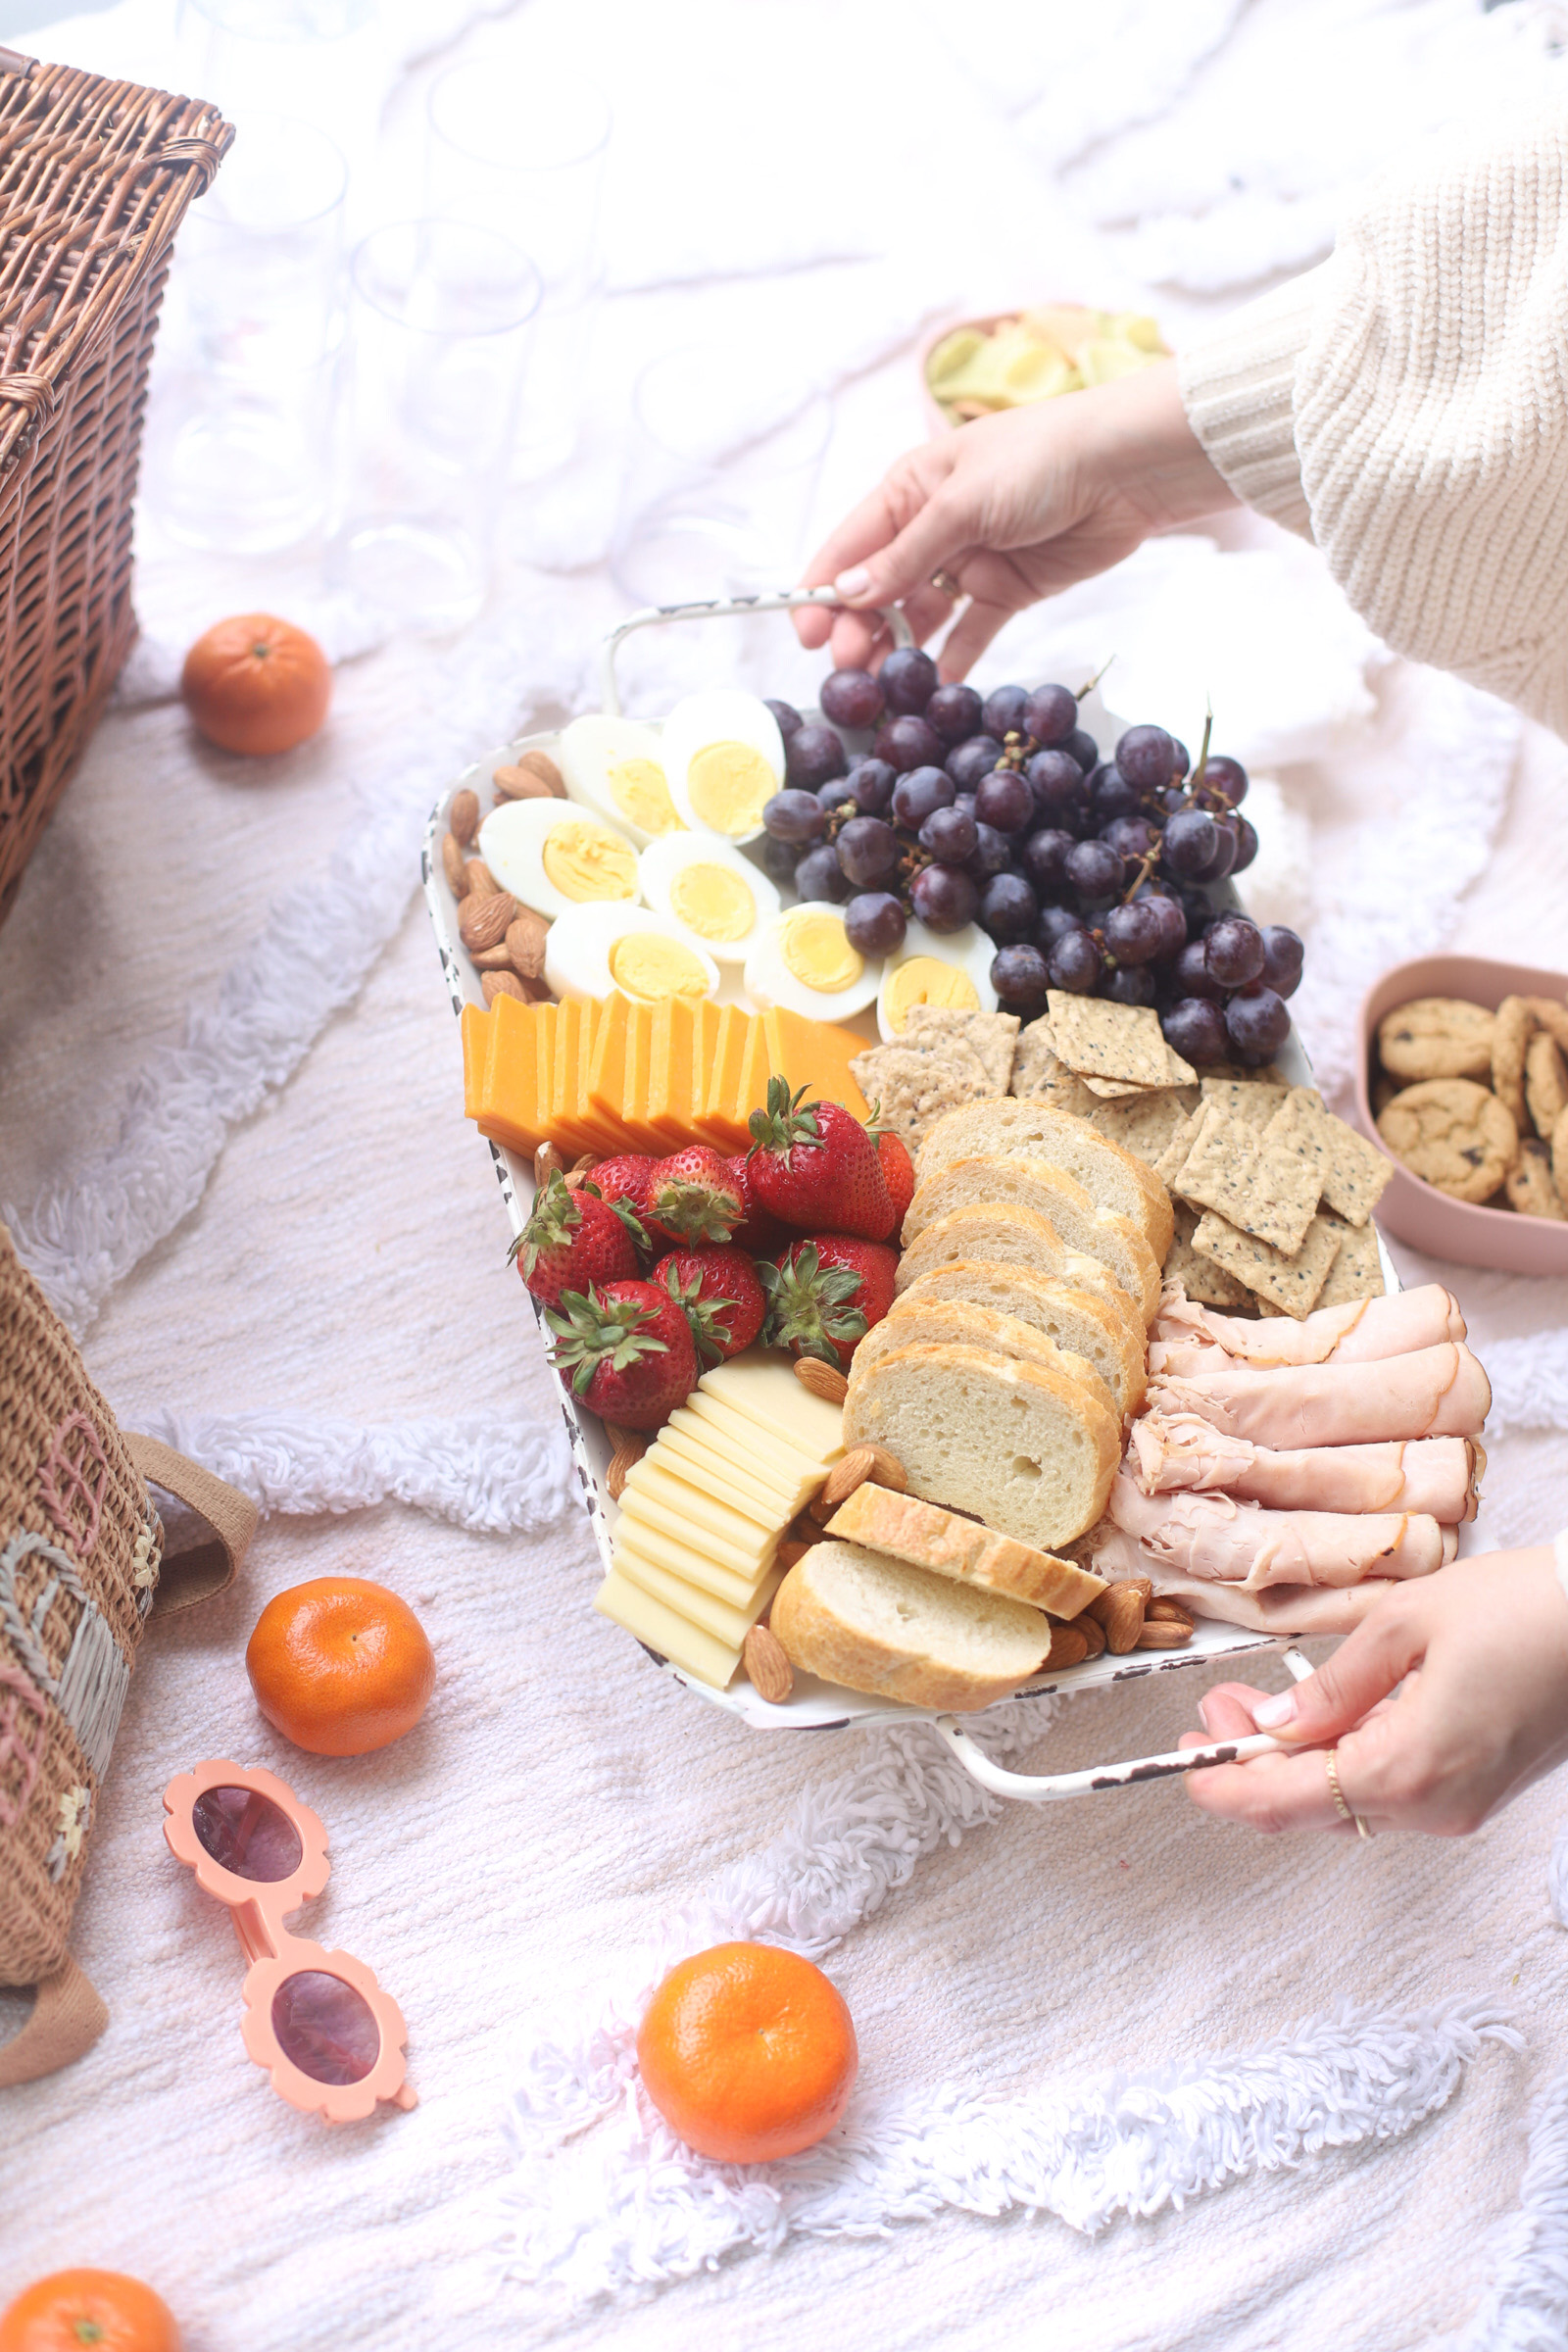 basket full of bread, eggs, fruits, and cheese for Charcuterie Board